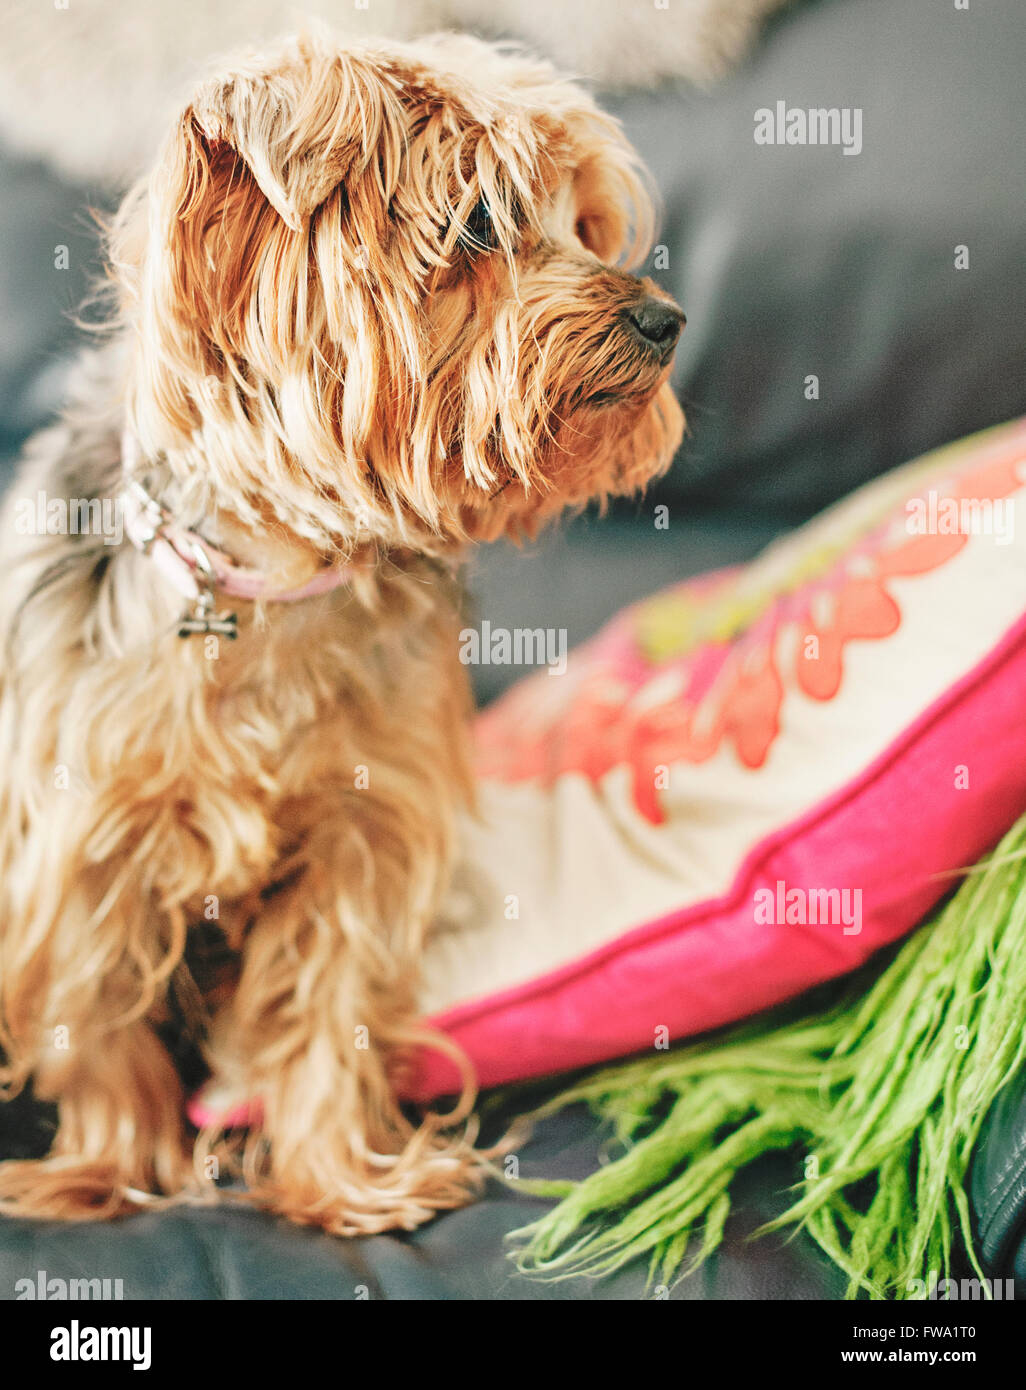 dog terrier siting on bed - Stock Image